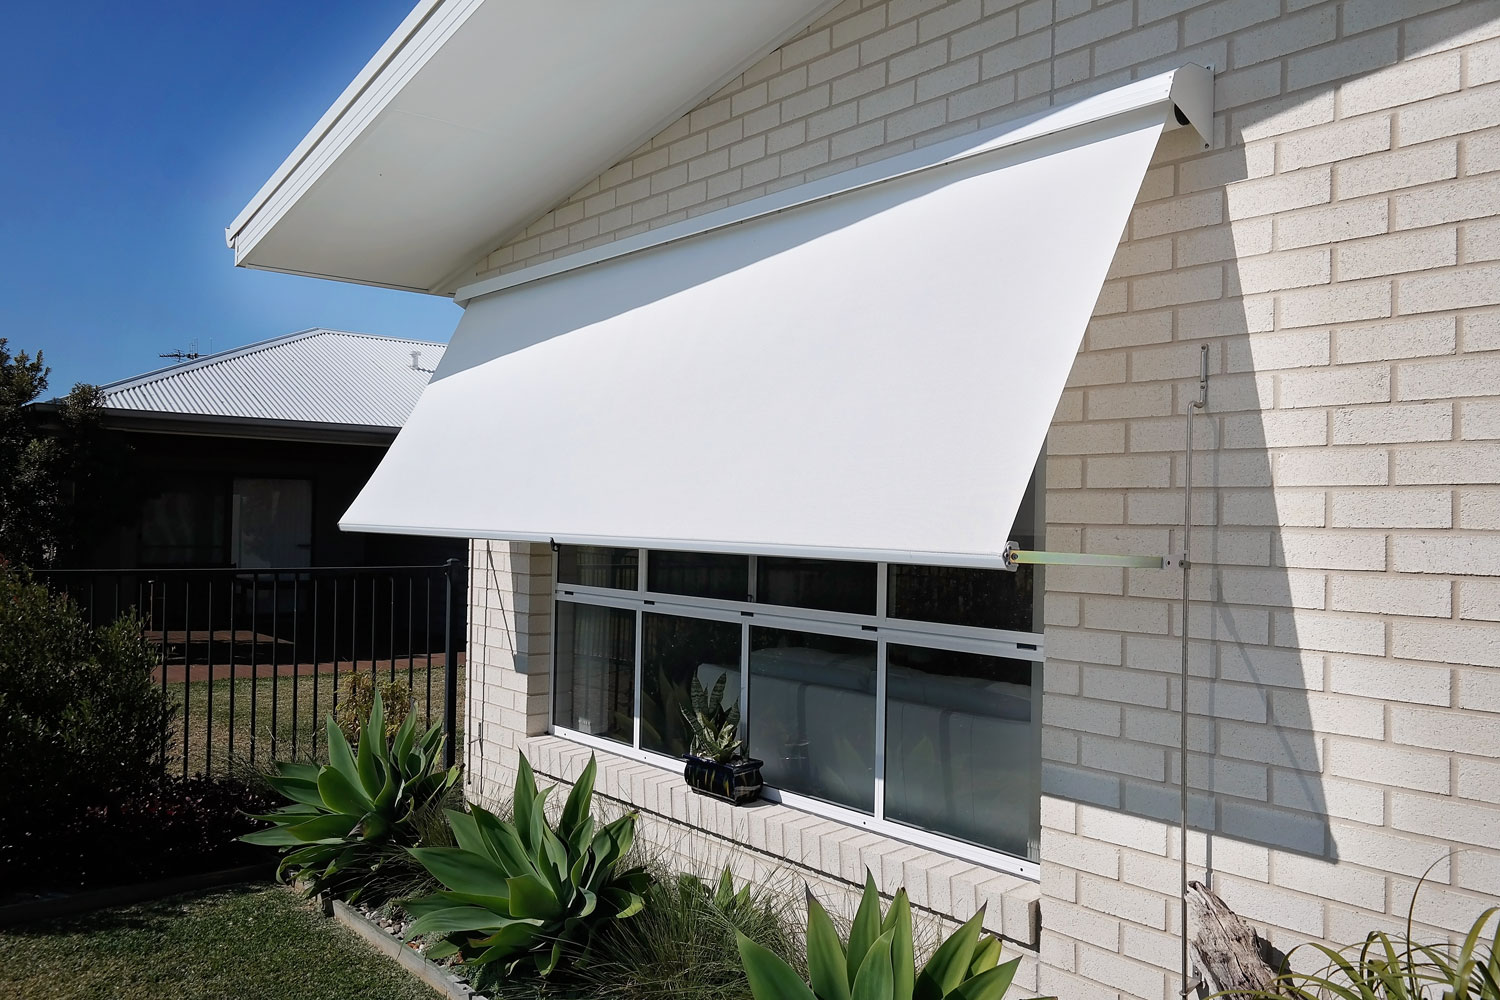 w ll awnings d retractable love patio awning wayfair you x motorized outdoor ft